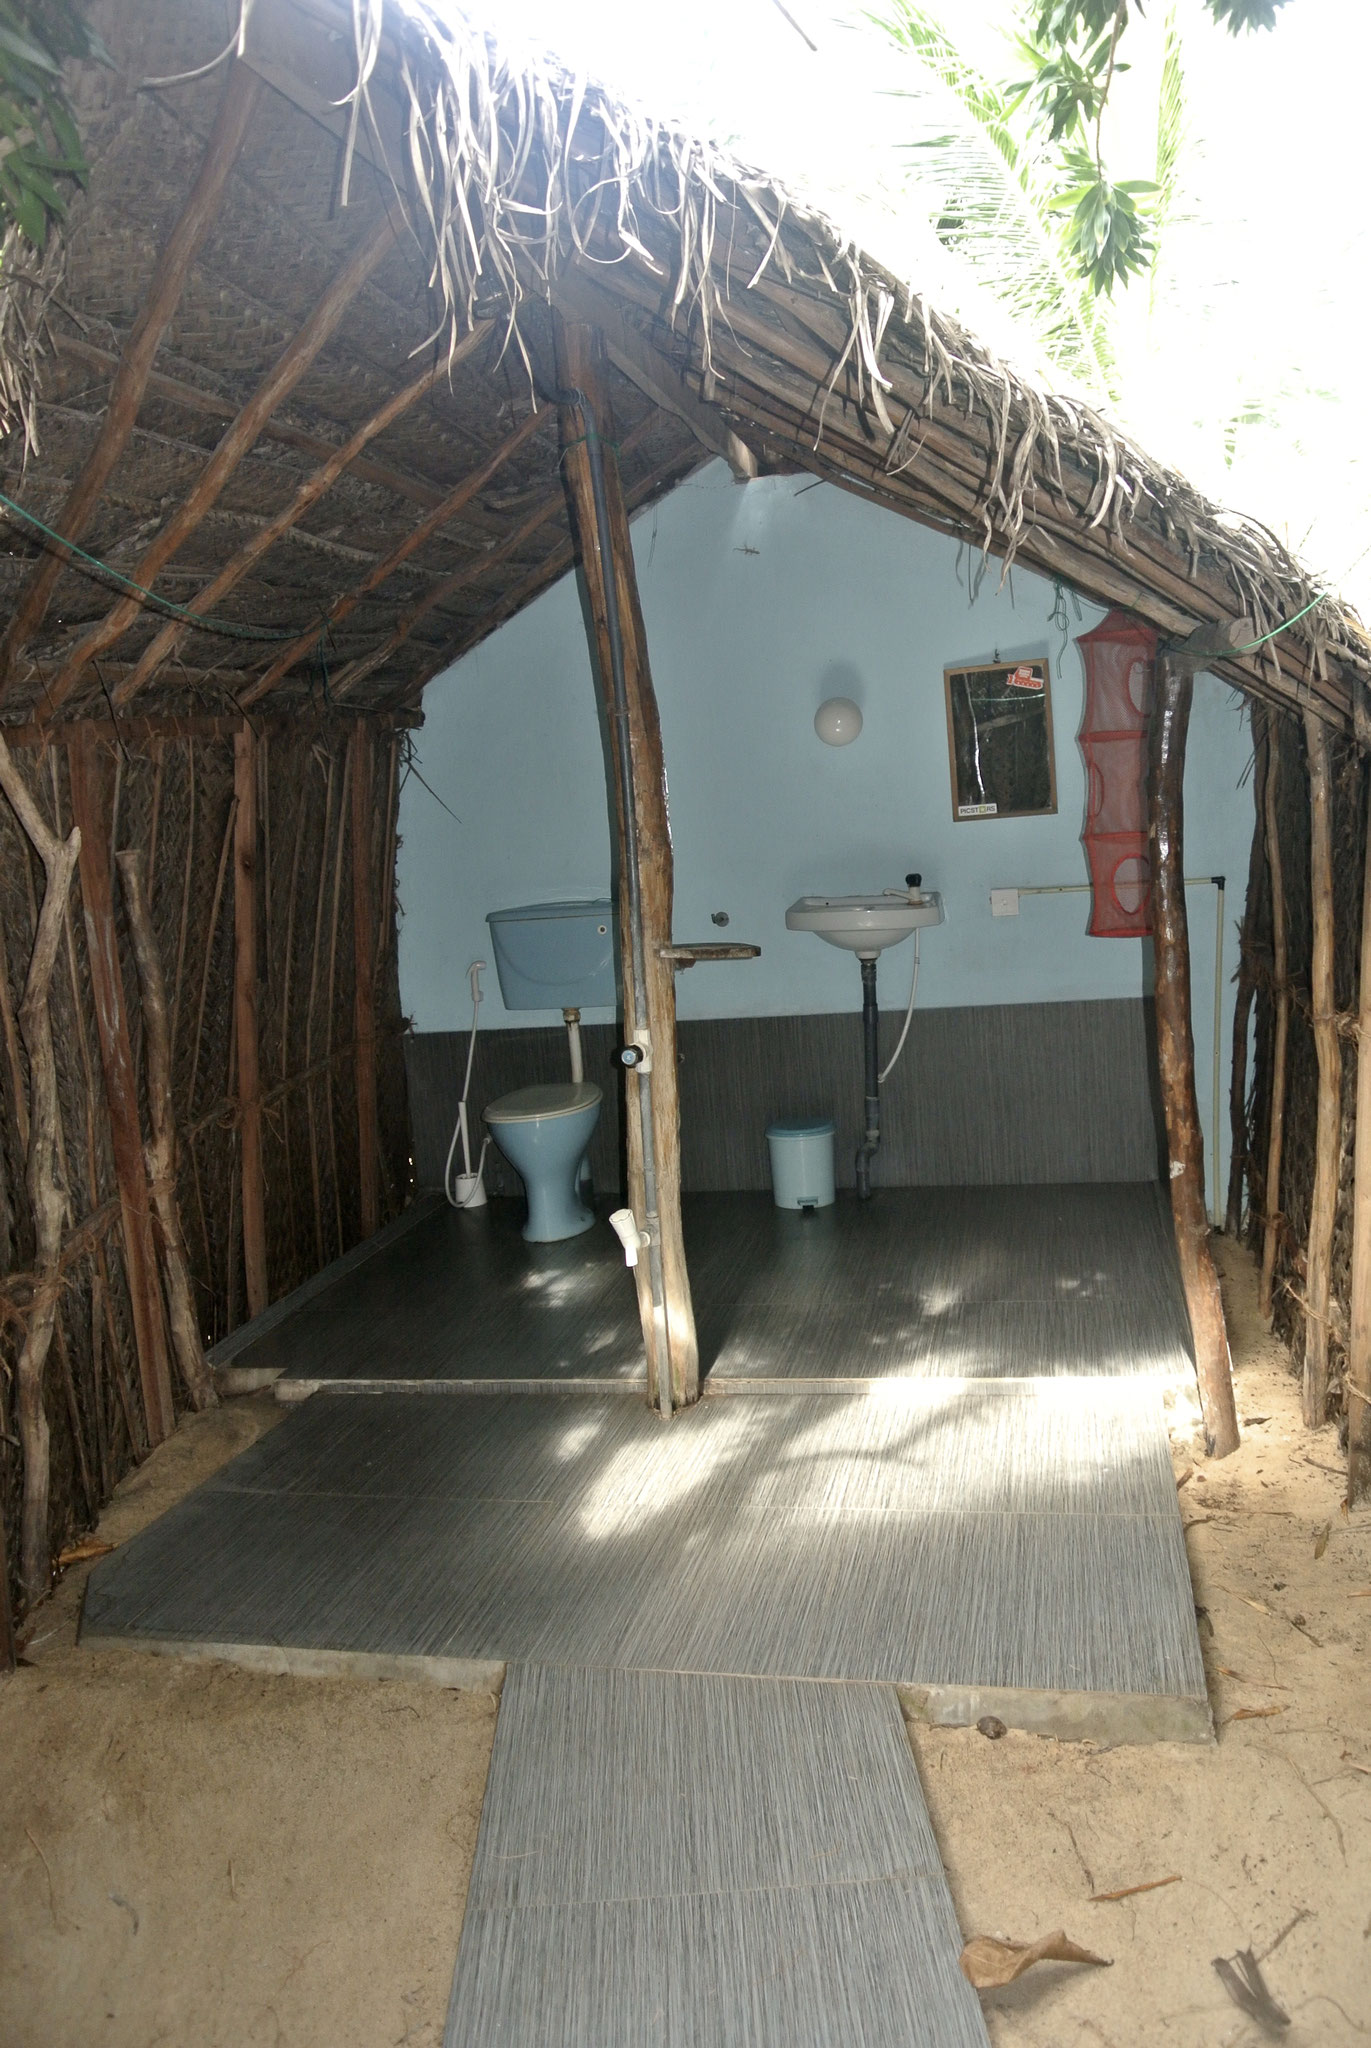 The Noa Cabana / Open Air Bathroom